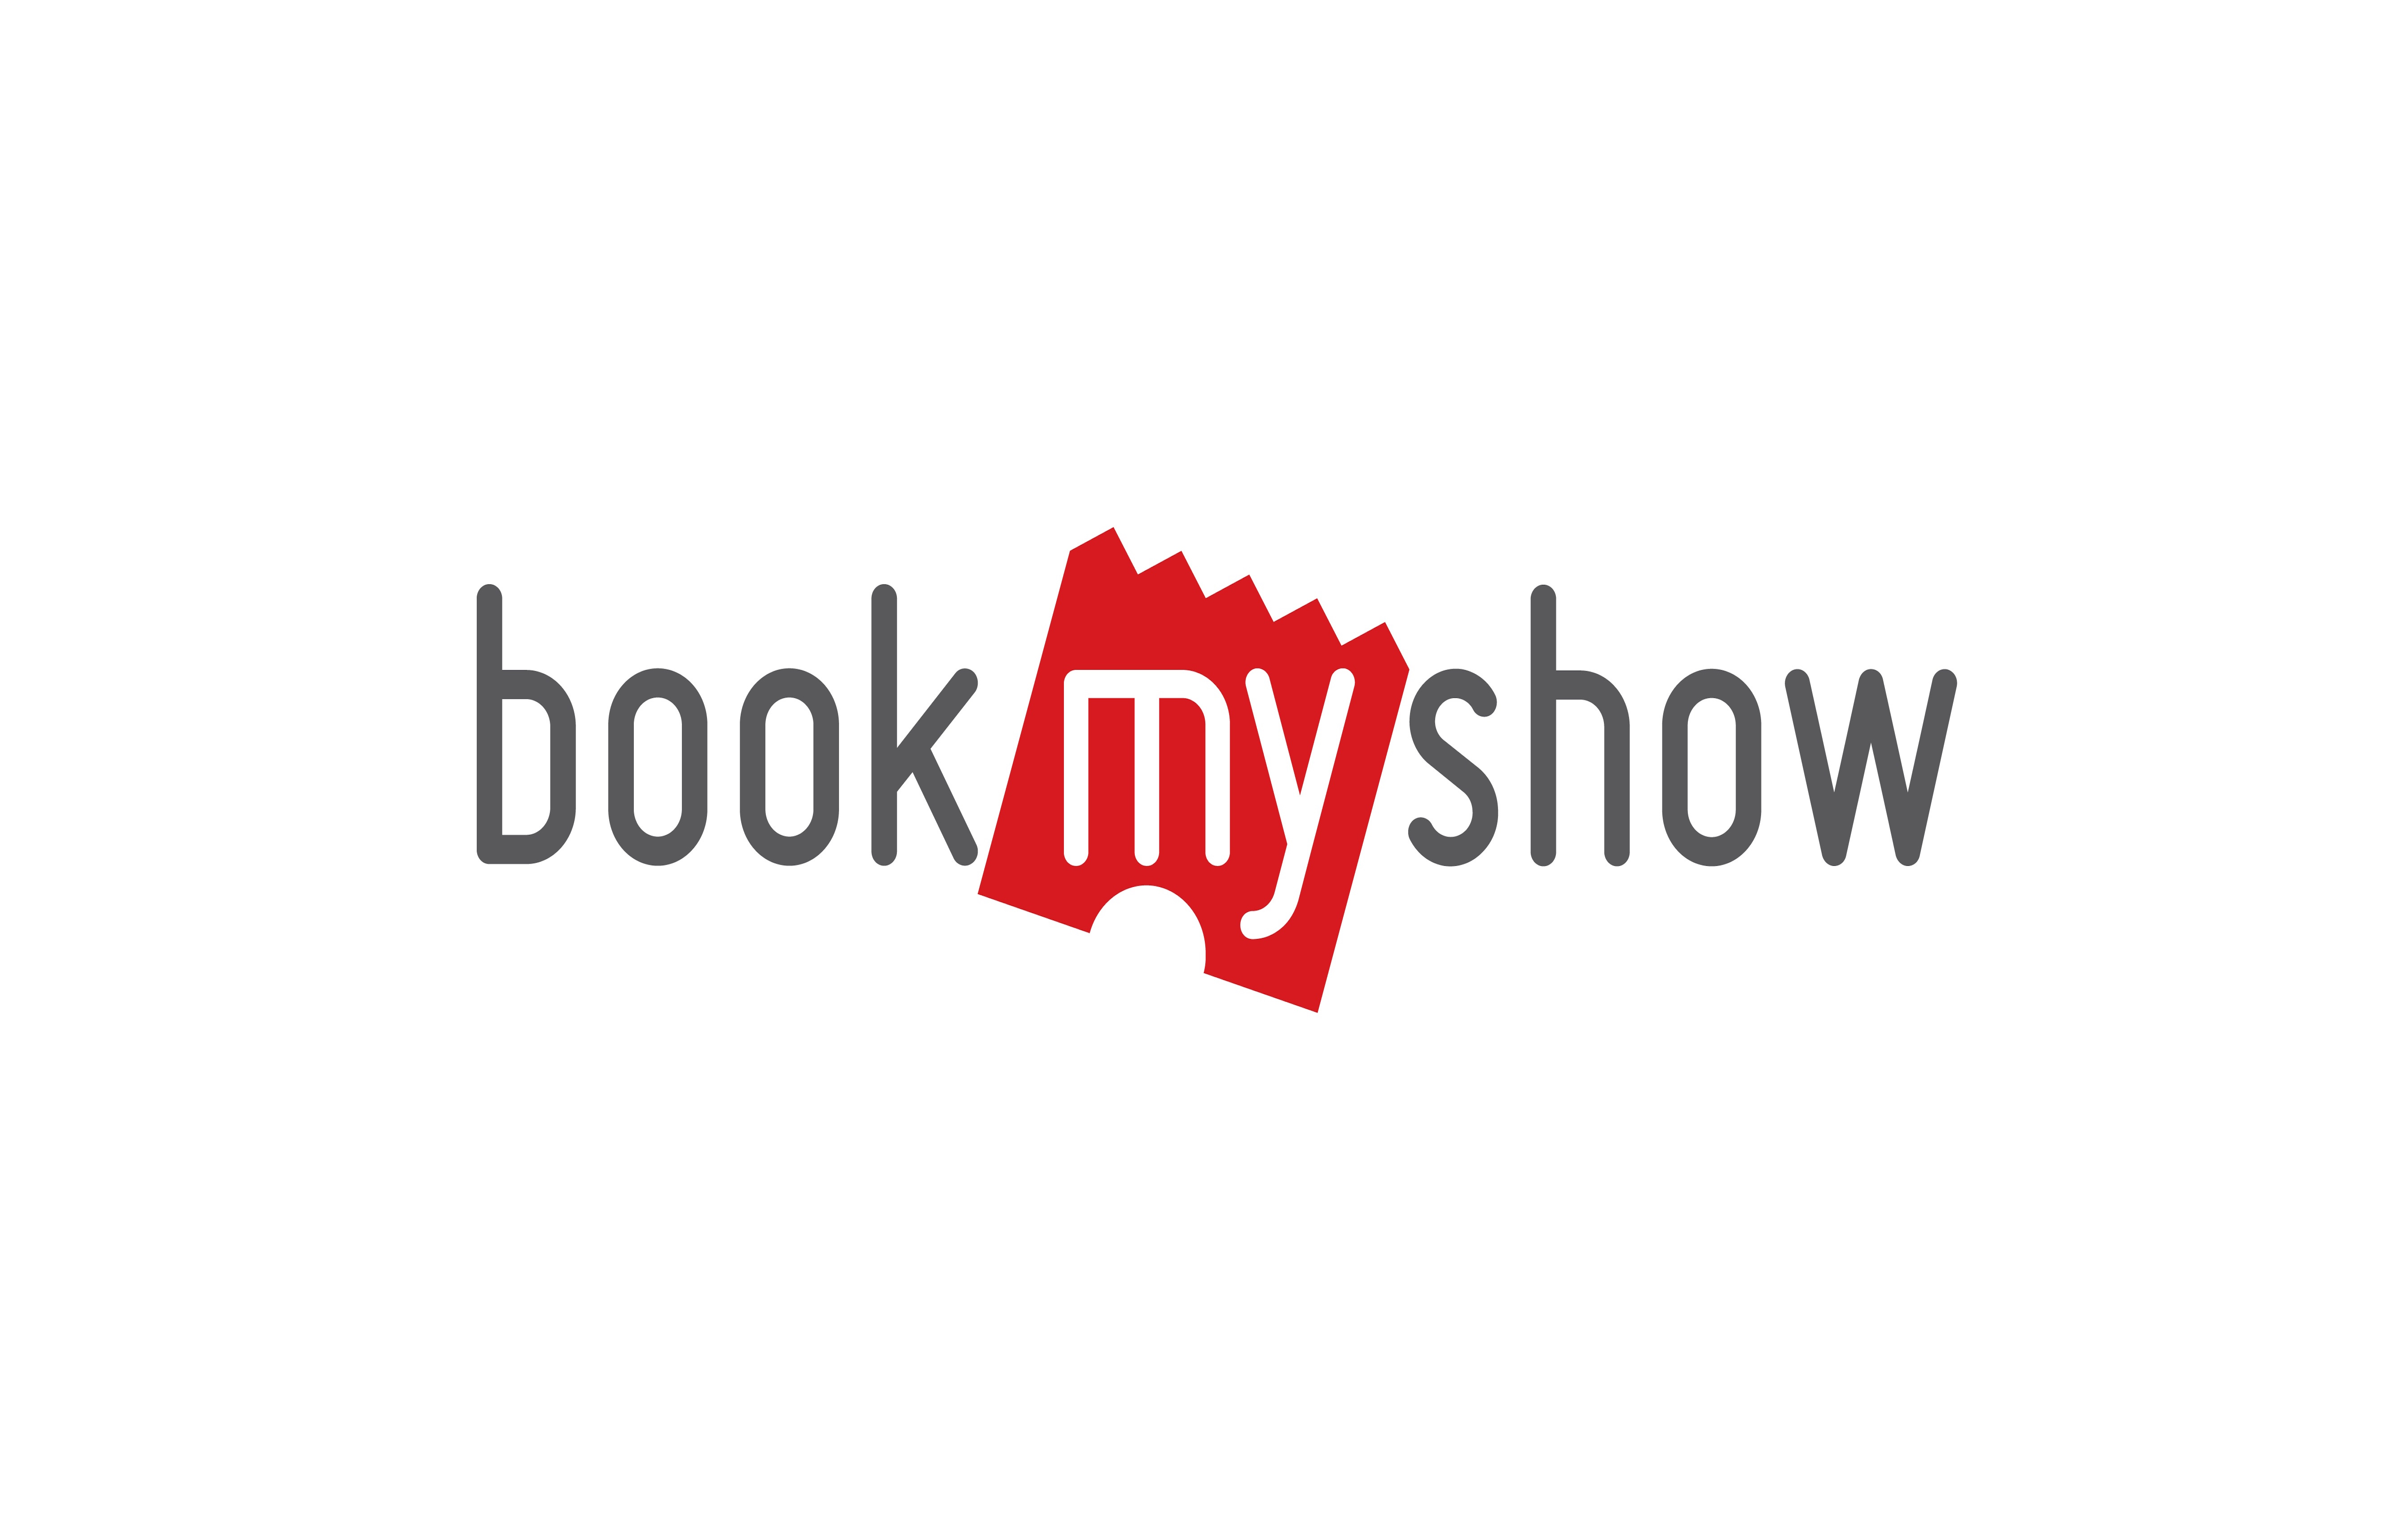 Net Prophet India S Bookmyshow A Digital Pioneer In One